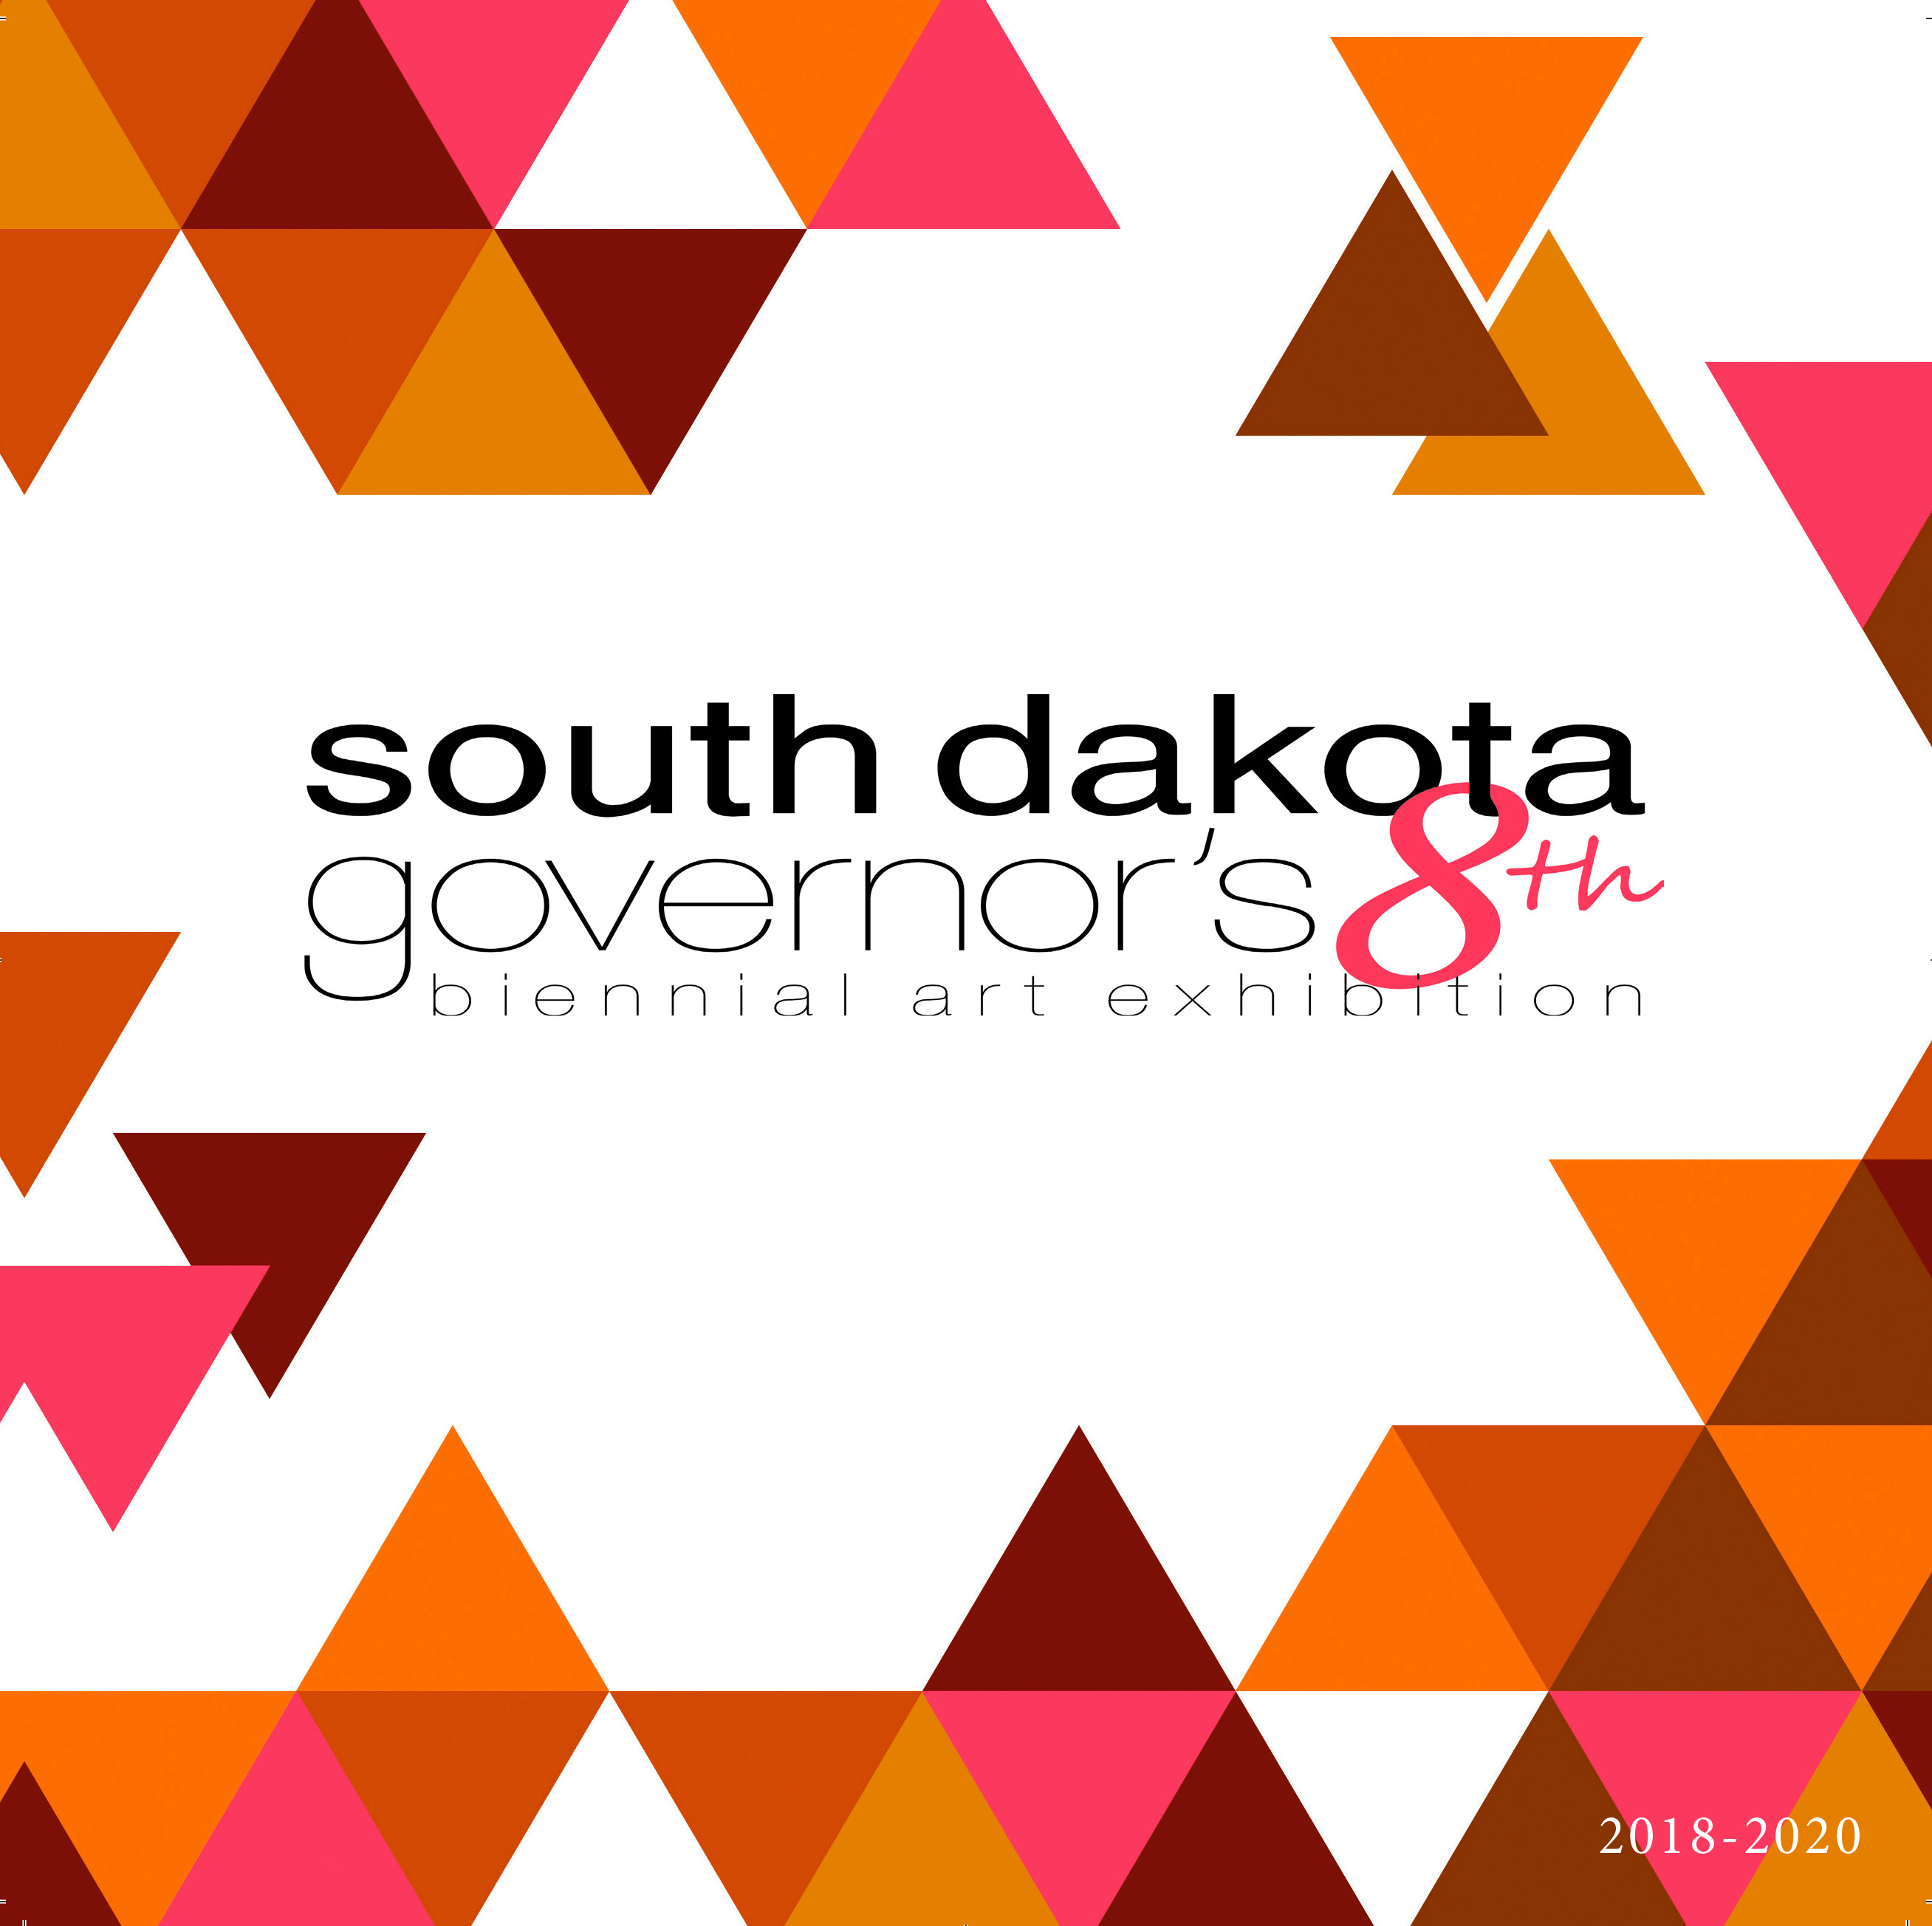 South Dakota Governor's 8th Biennial Art Exhibition logo